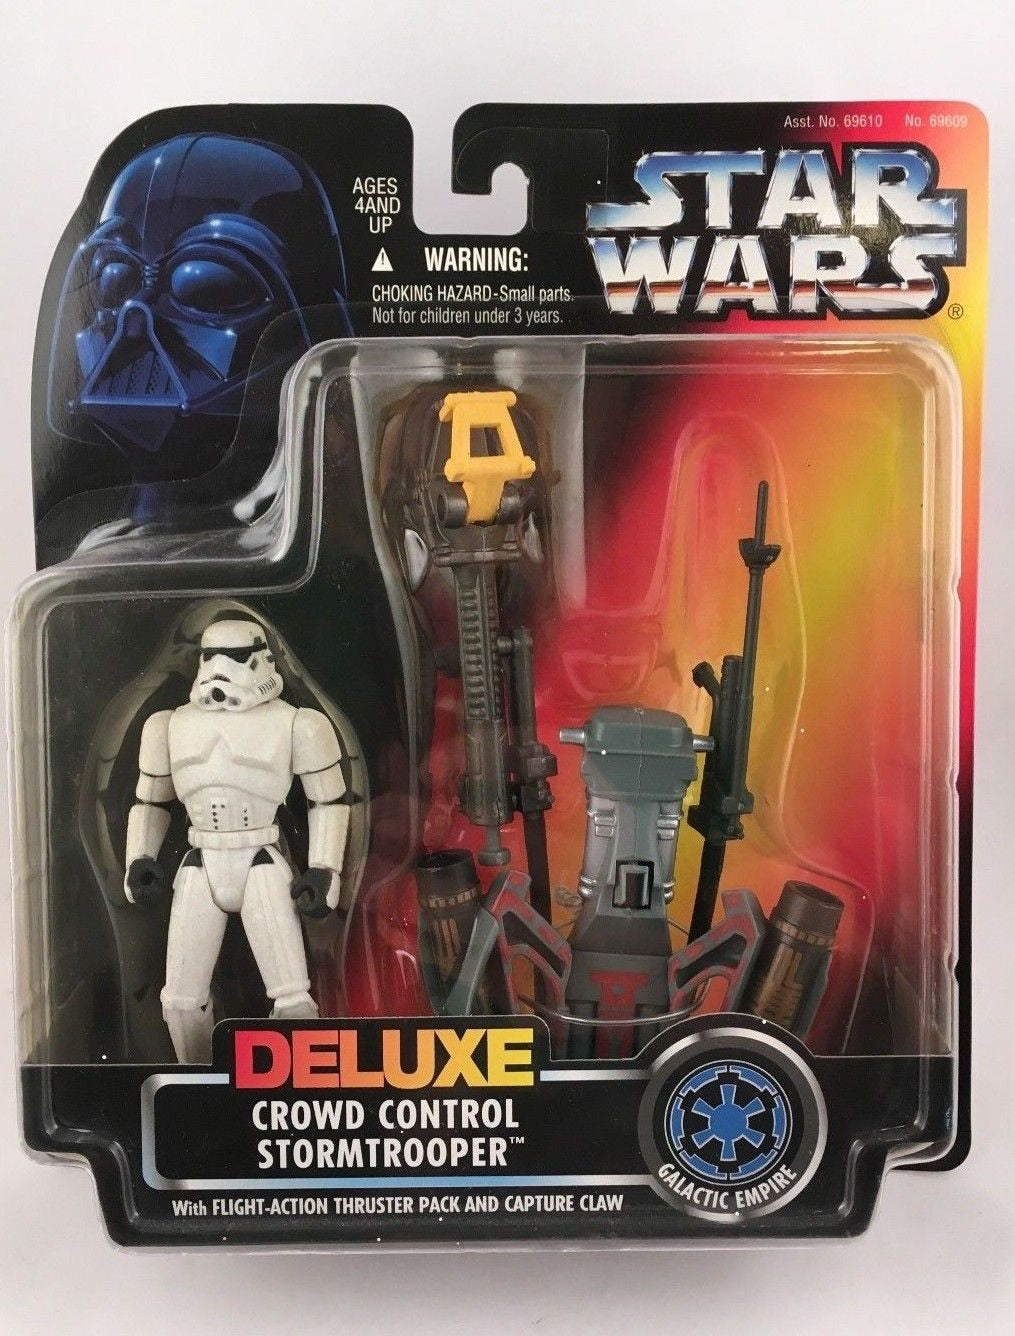 Deluxe Crowd Control Stormtrooper w/thruster and claw POTF 1996